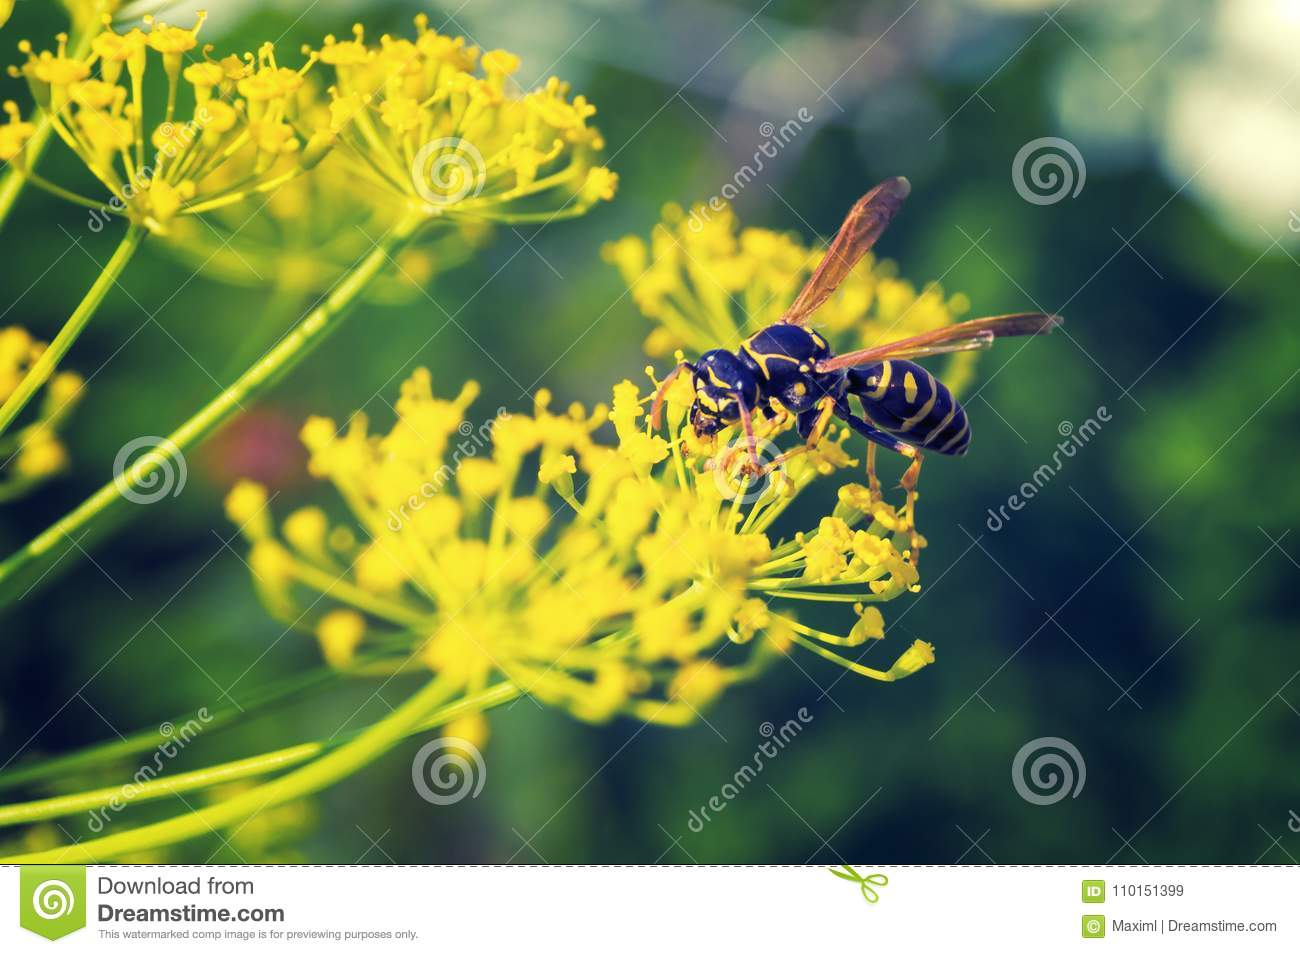 Wasp collects nectar